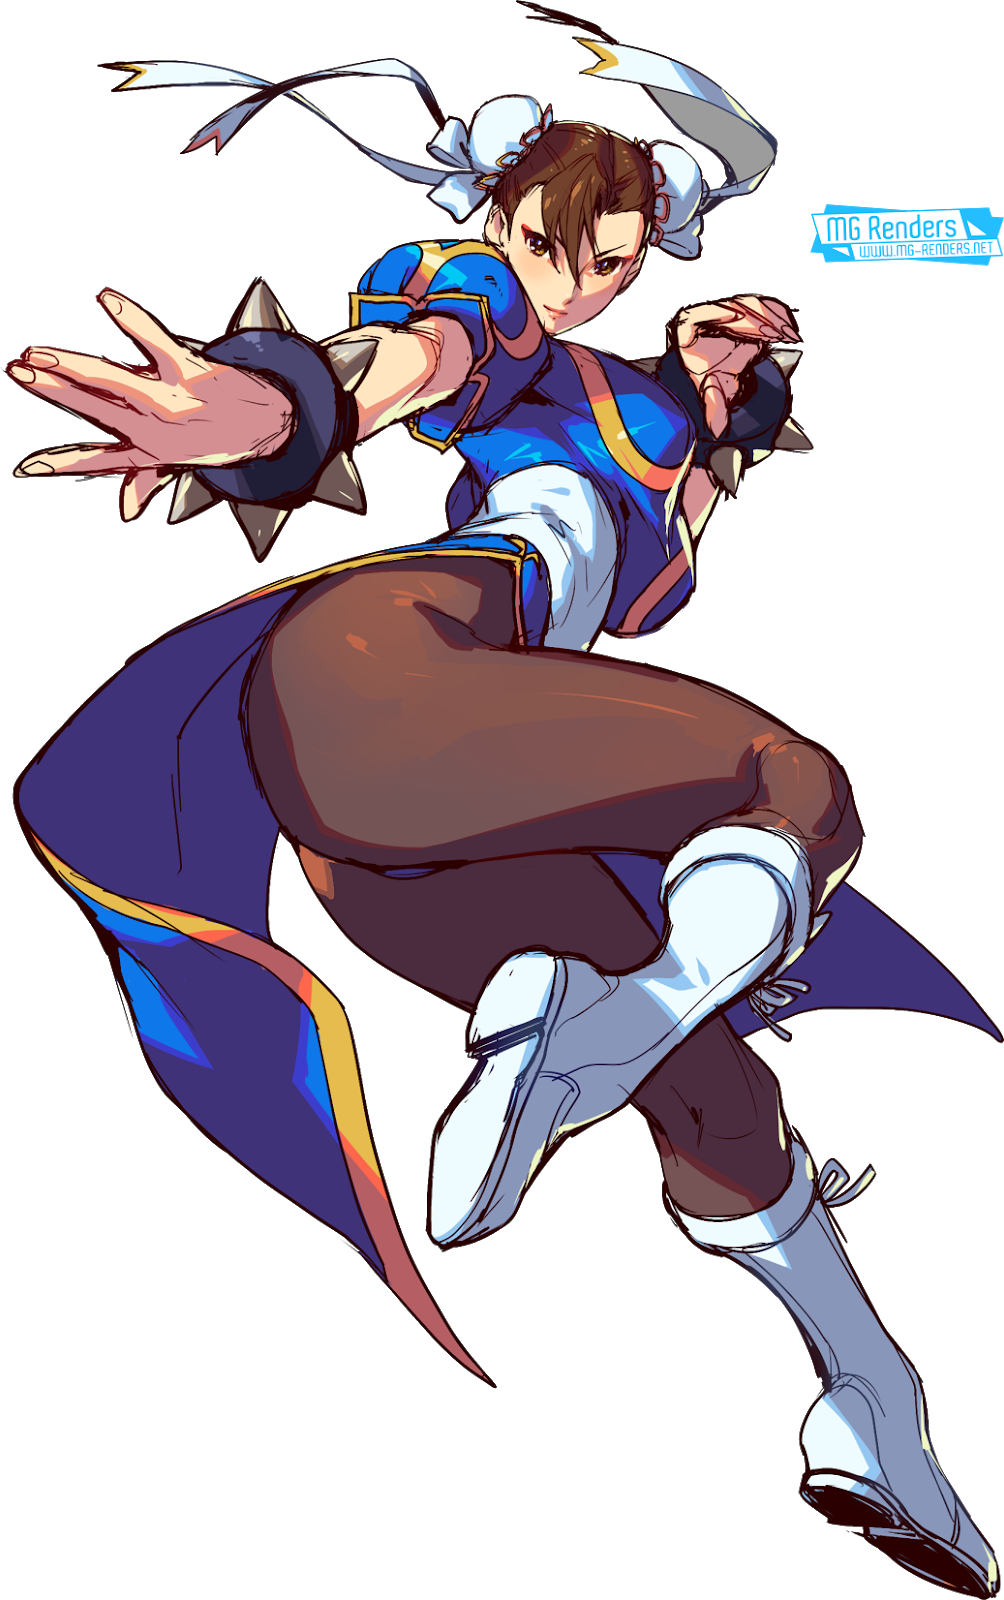 Tags: Render, Ass, Brown hair, Chinese clothes, Chun-Li, Dress, Full body, Hair bun, Huge Breasts, Large Breasts, Pantyhose, Street Fighter